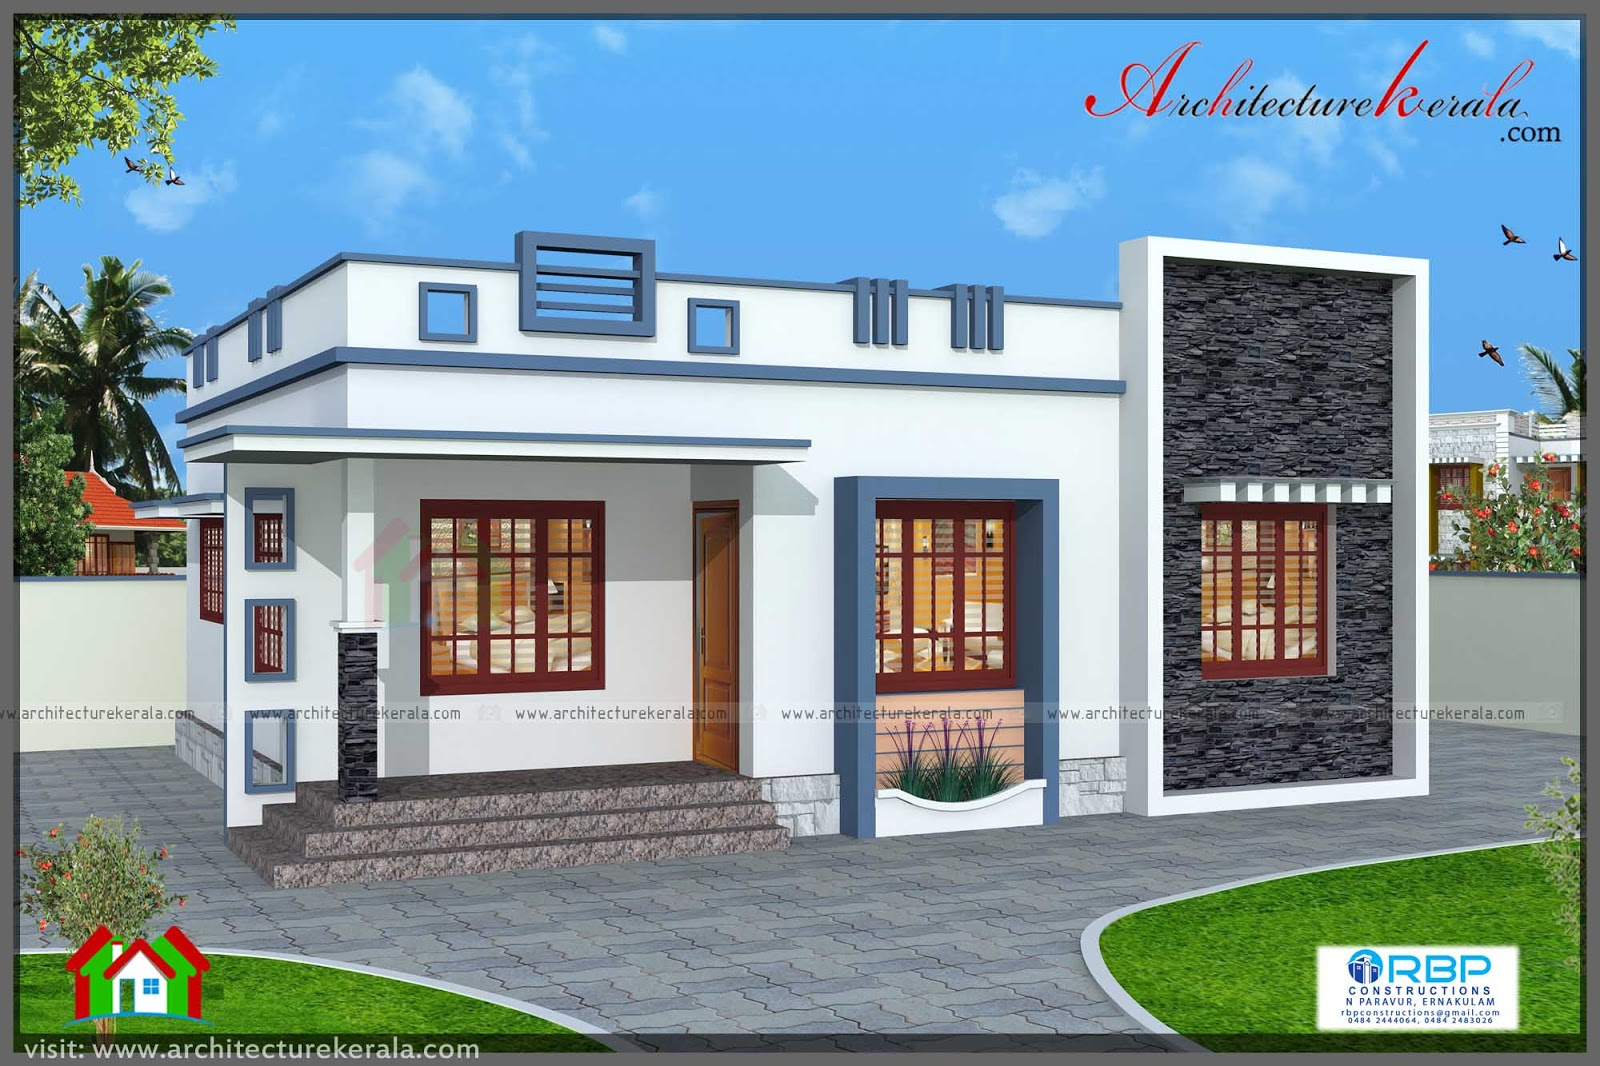 3 Rooms House Plans Best Of 760 Square Feet 3 Bedroom House Plan Architecture Kerala Model House Plan Village House Design Small House Elevation Design